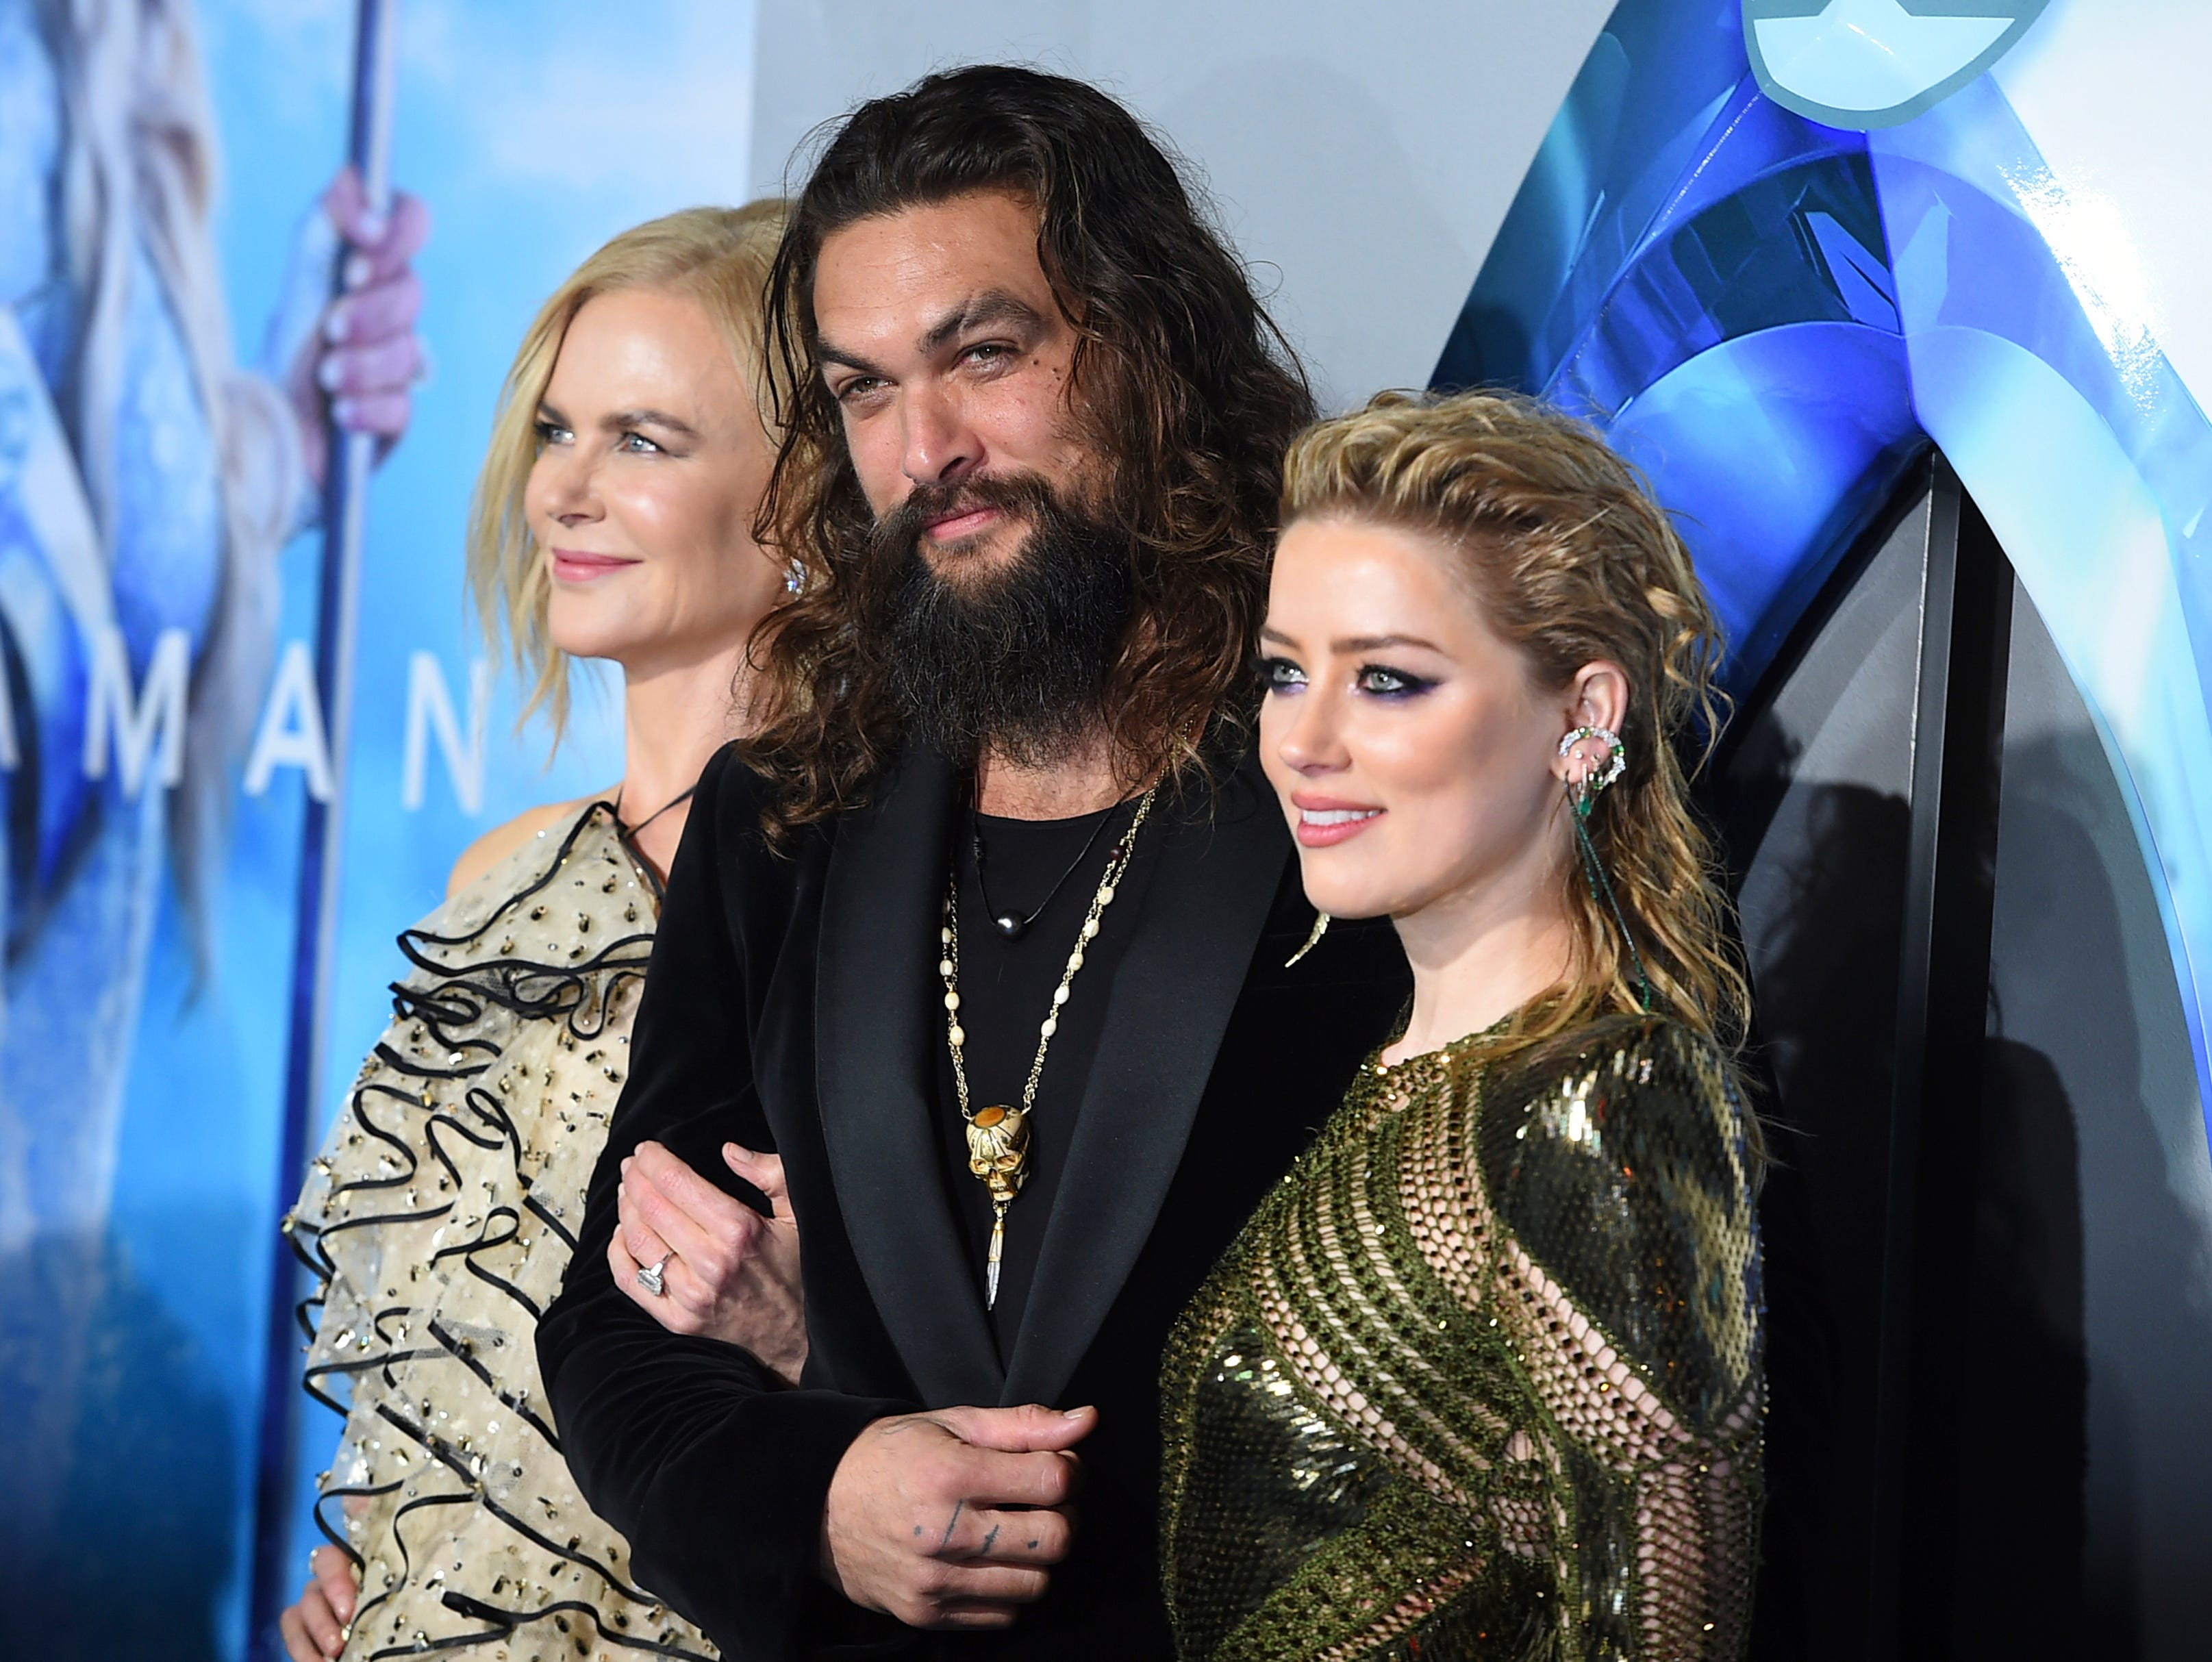 """Nicole Kidman, left, Jason Momoa and Amber Heard arrive at the premiere of """"Aquaman"""" at TCL Chinese Theatre on Wednesday, Dec. 12, 2018, in Los Angeles."""